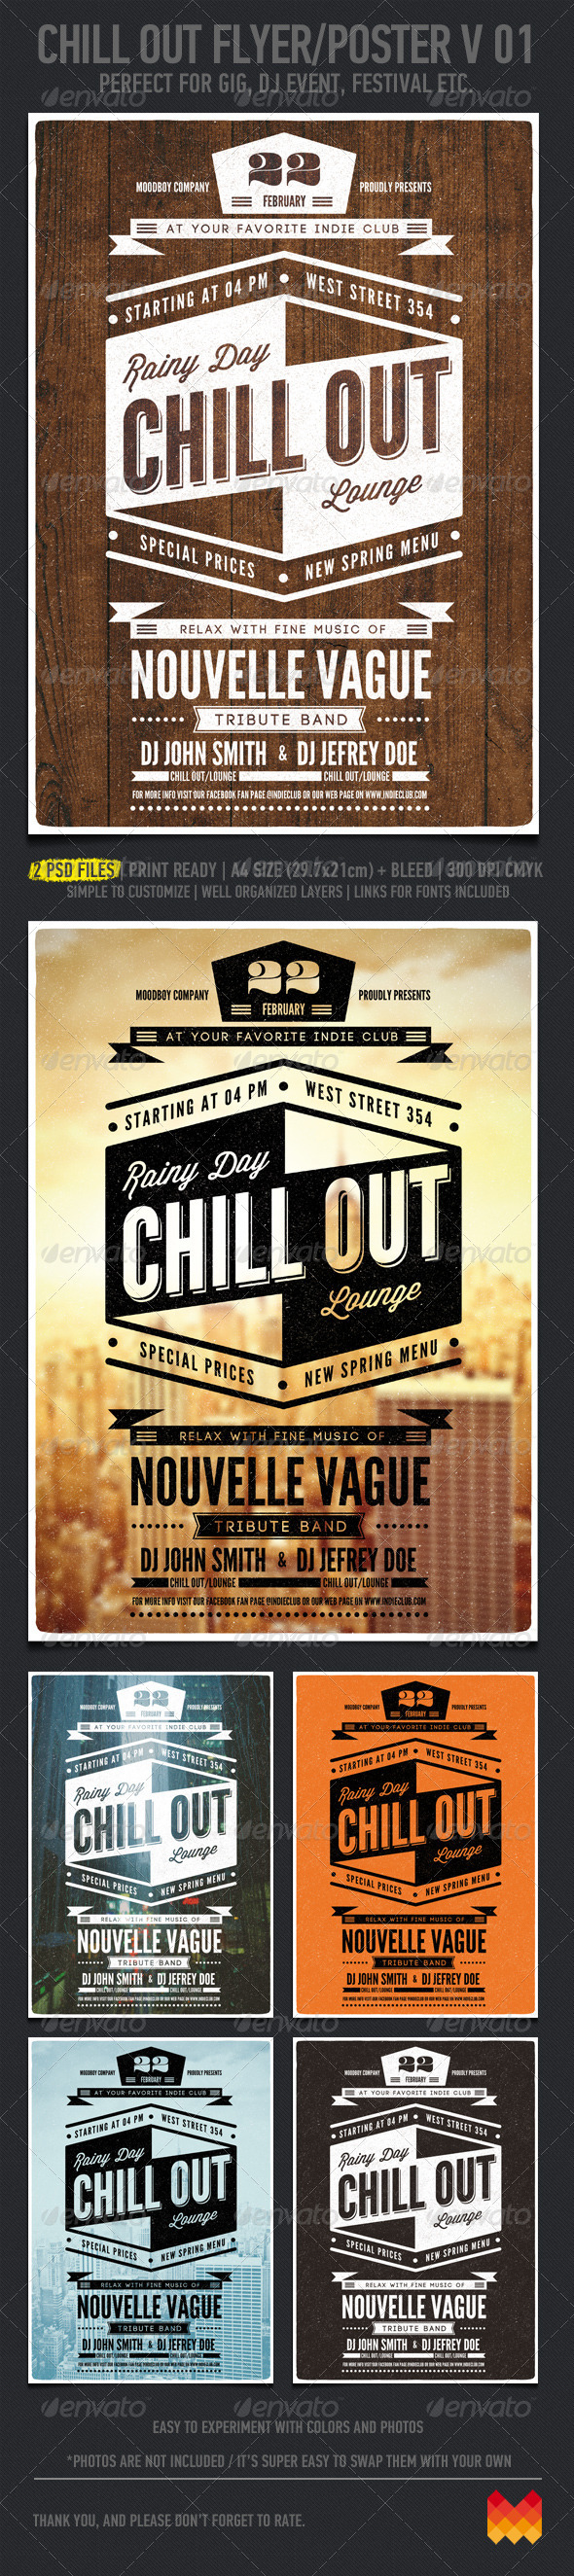 Chill Out Flyer/Poster V. 01 - Flyers Print Templates